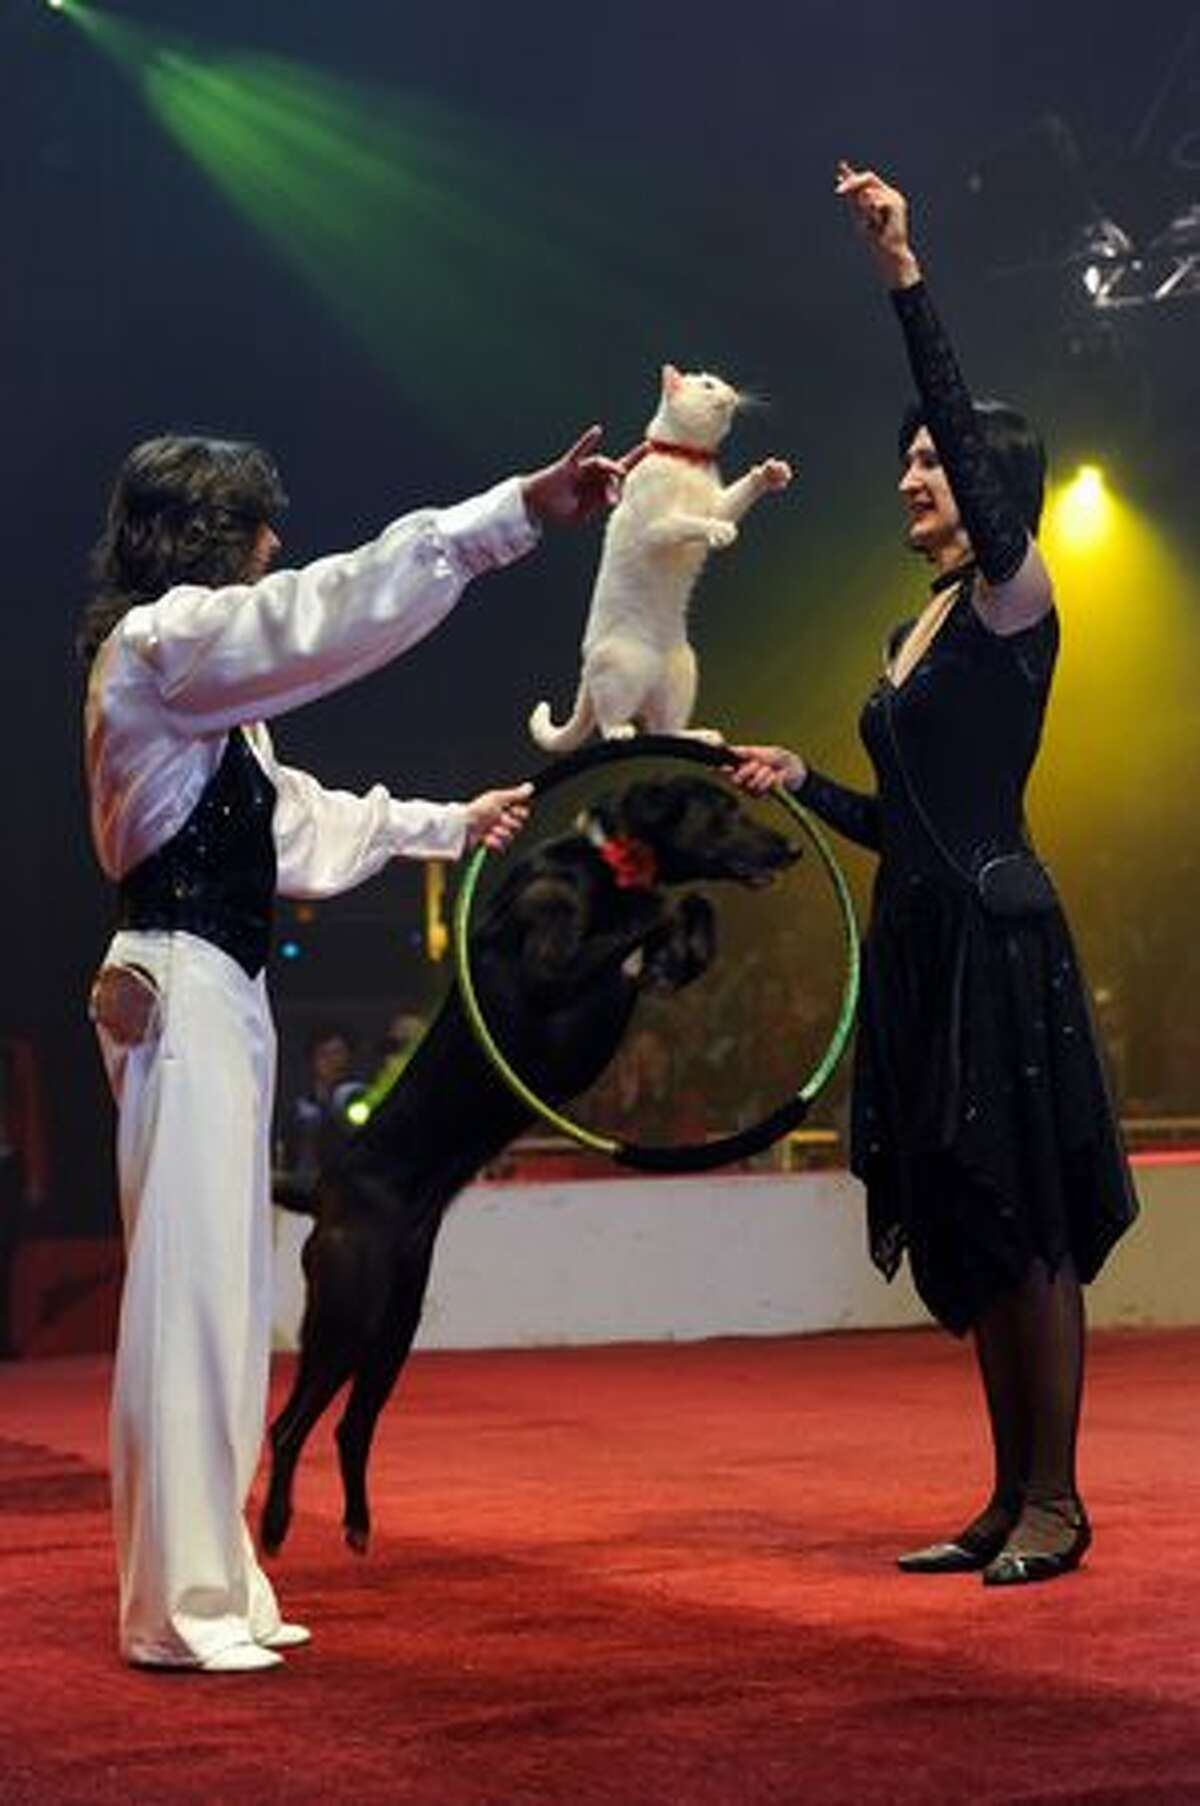 Russian cat and dog trainers perform during a show at the Massy circus on January 13, 2011 as part of the Circus International Festival that takes place in Massy, France from January 13, 2011 until January 16. (BERTRAND GUAY/AFP/Getty Images)